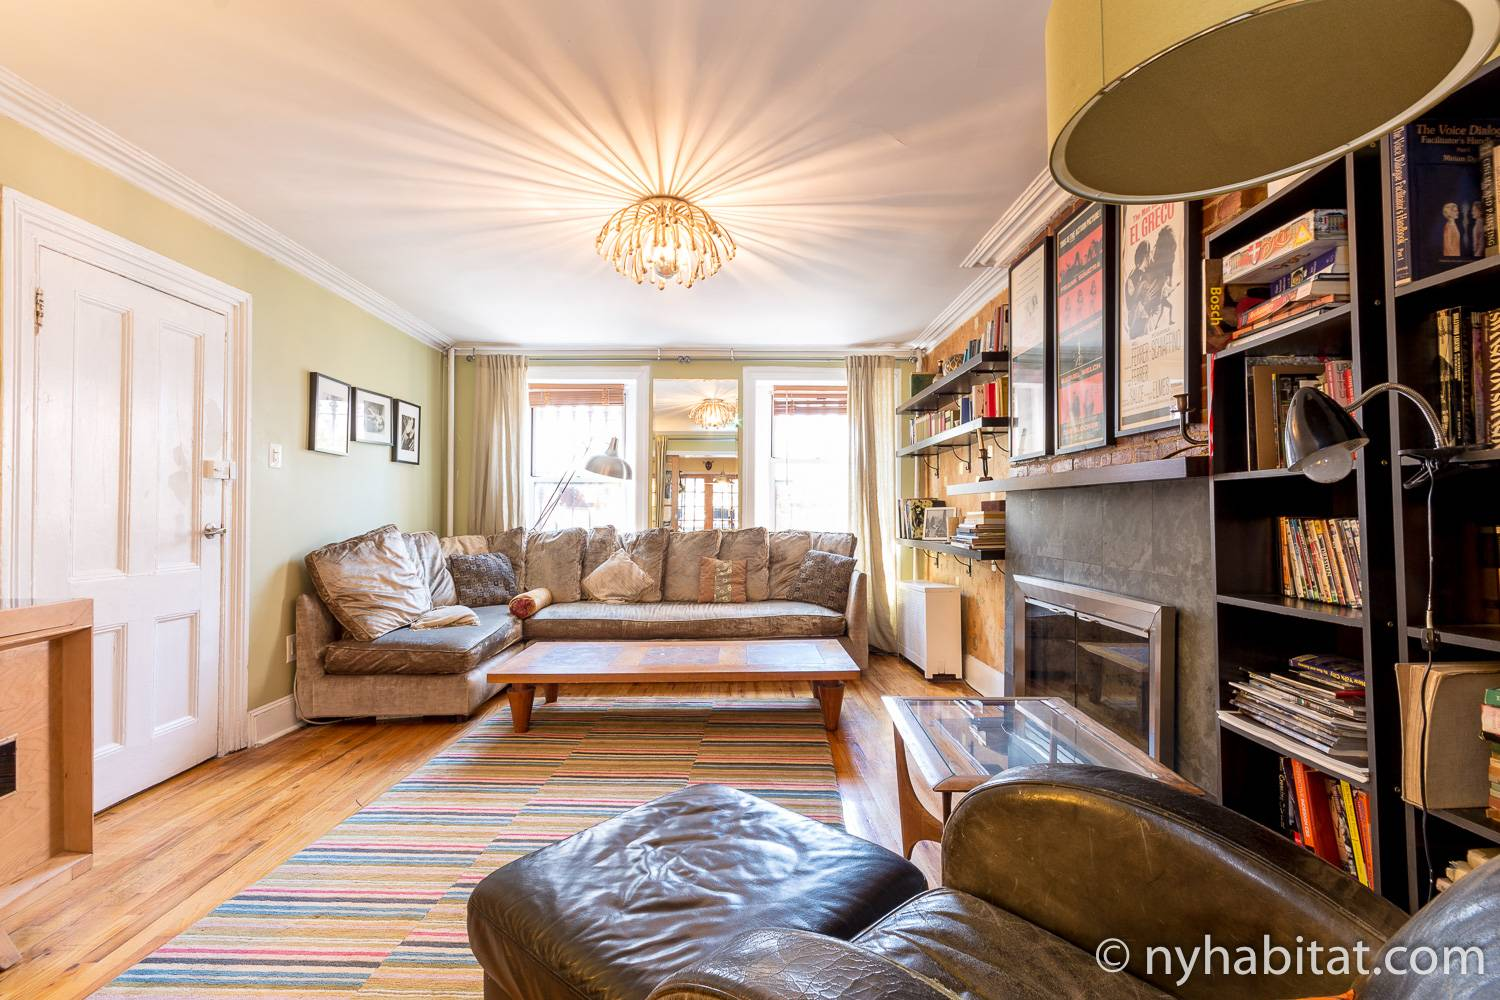 Image of living area of NY-12507 with decorative fireplace, sofa, chandelier, and armchair.